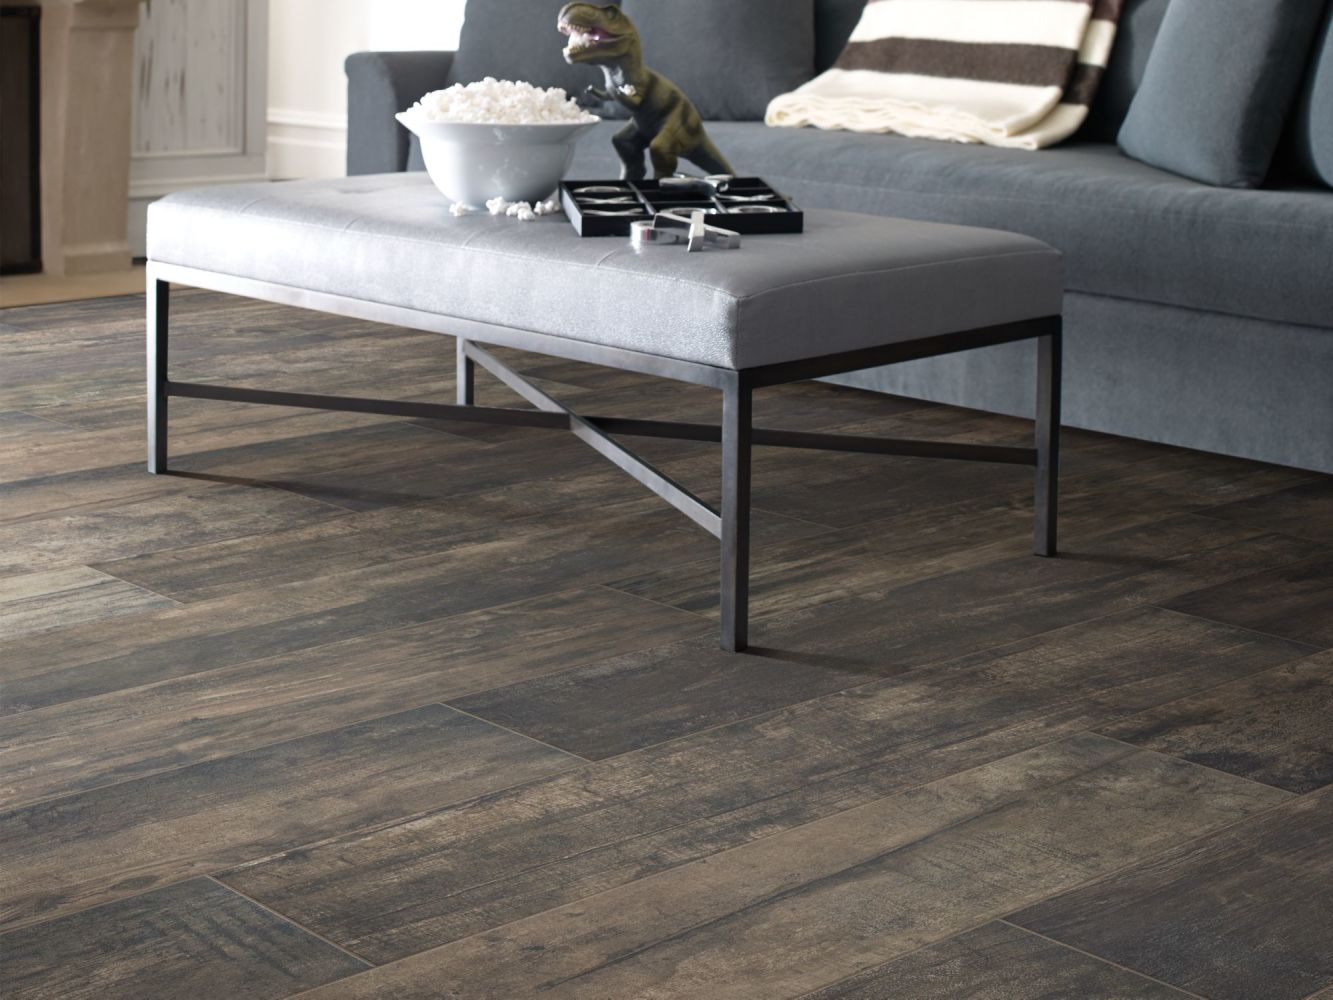 Shaw Floors Mattamy Homes Jackson Parkway 8×40 Forest 00770_M548H